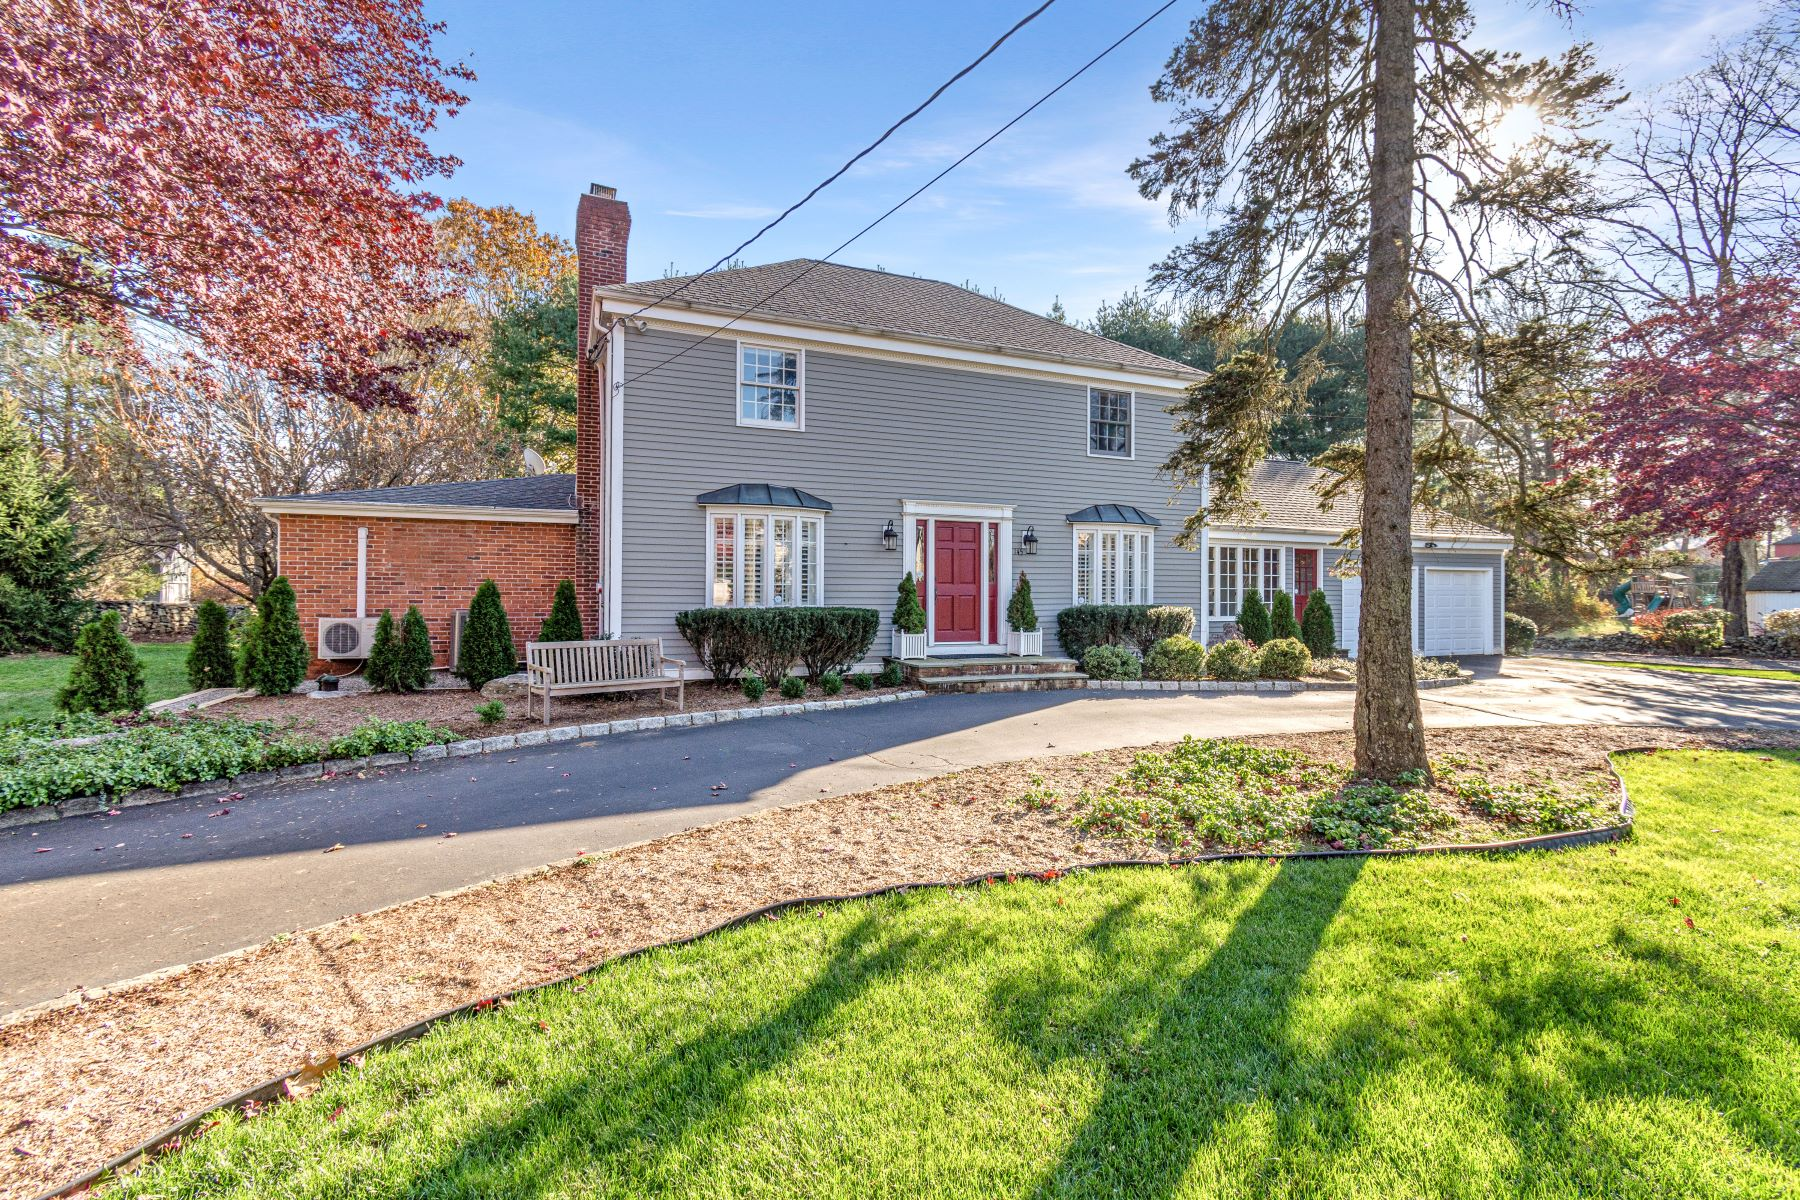 Single Family Homes for Sale at Impeccable, Move-in Ready Home Located in Wolfpit 145 Partrick Ave Norwalk, Connecticut 06851 United States